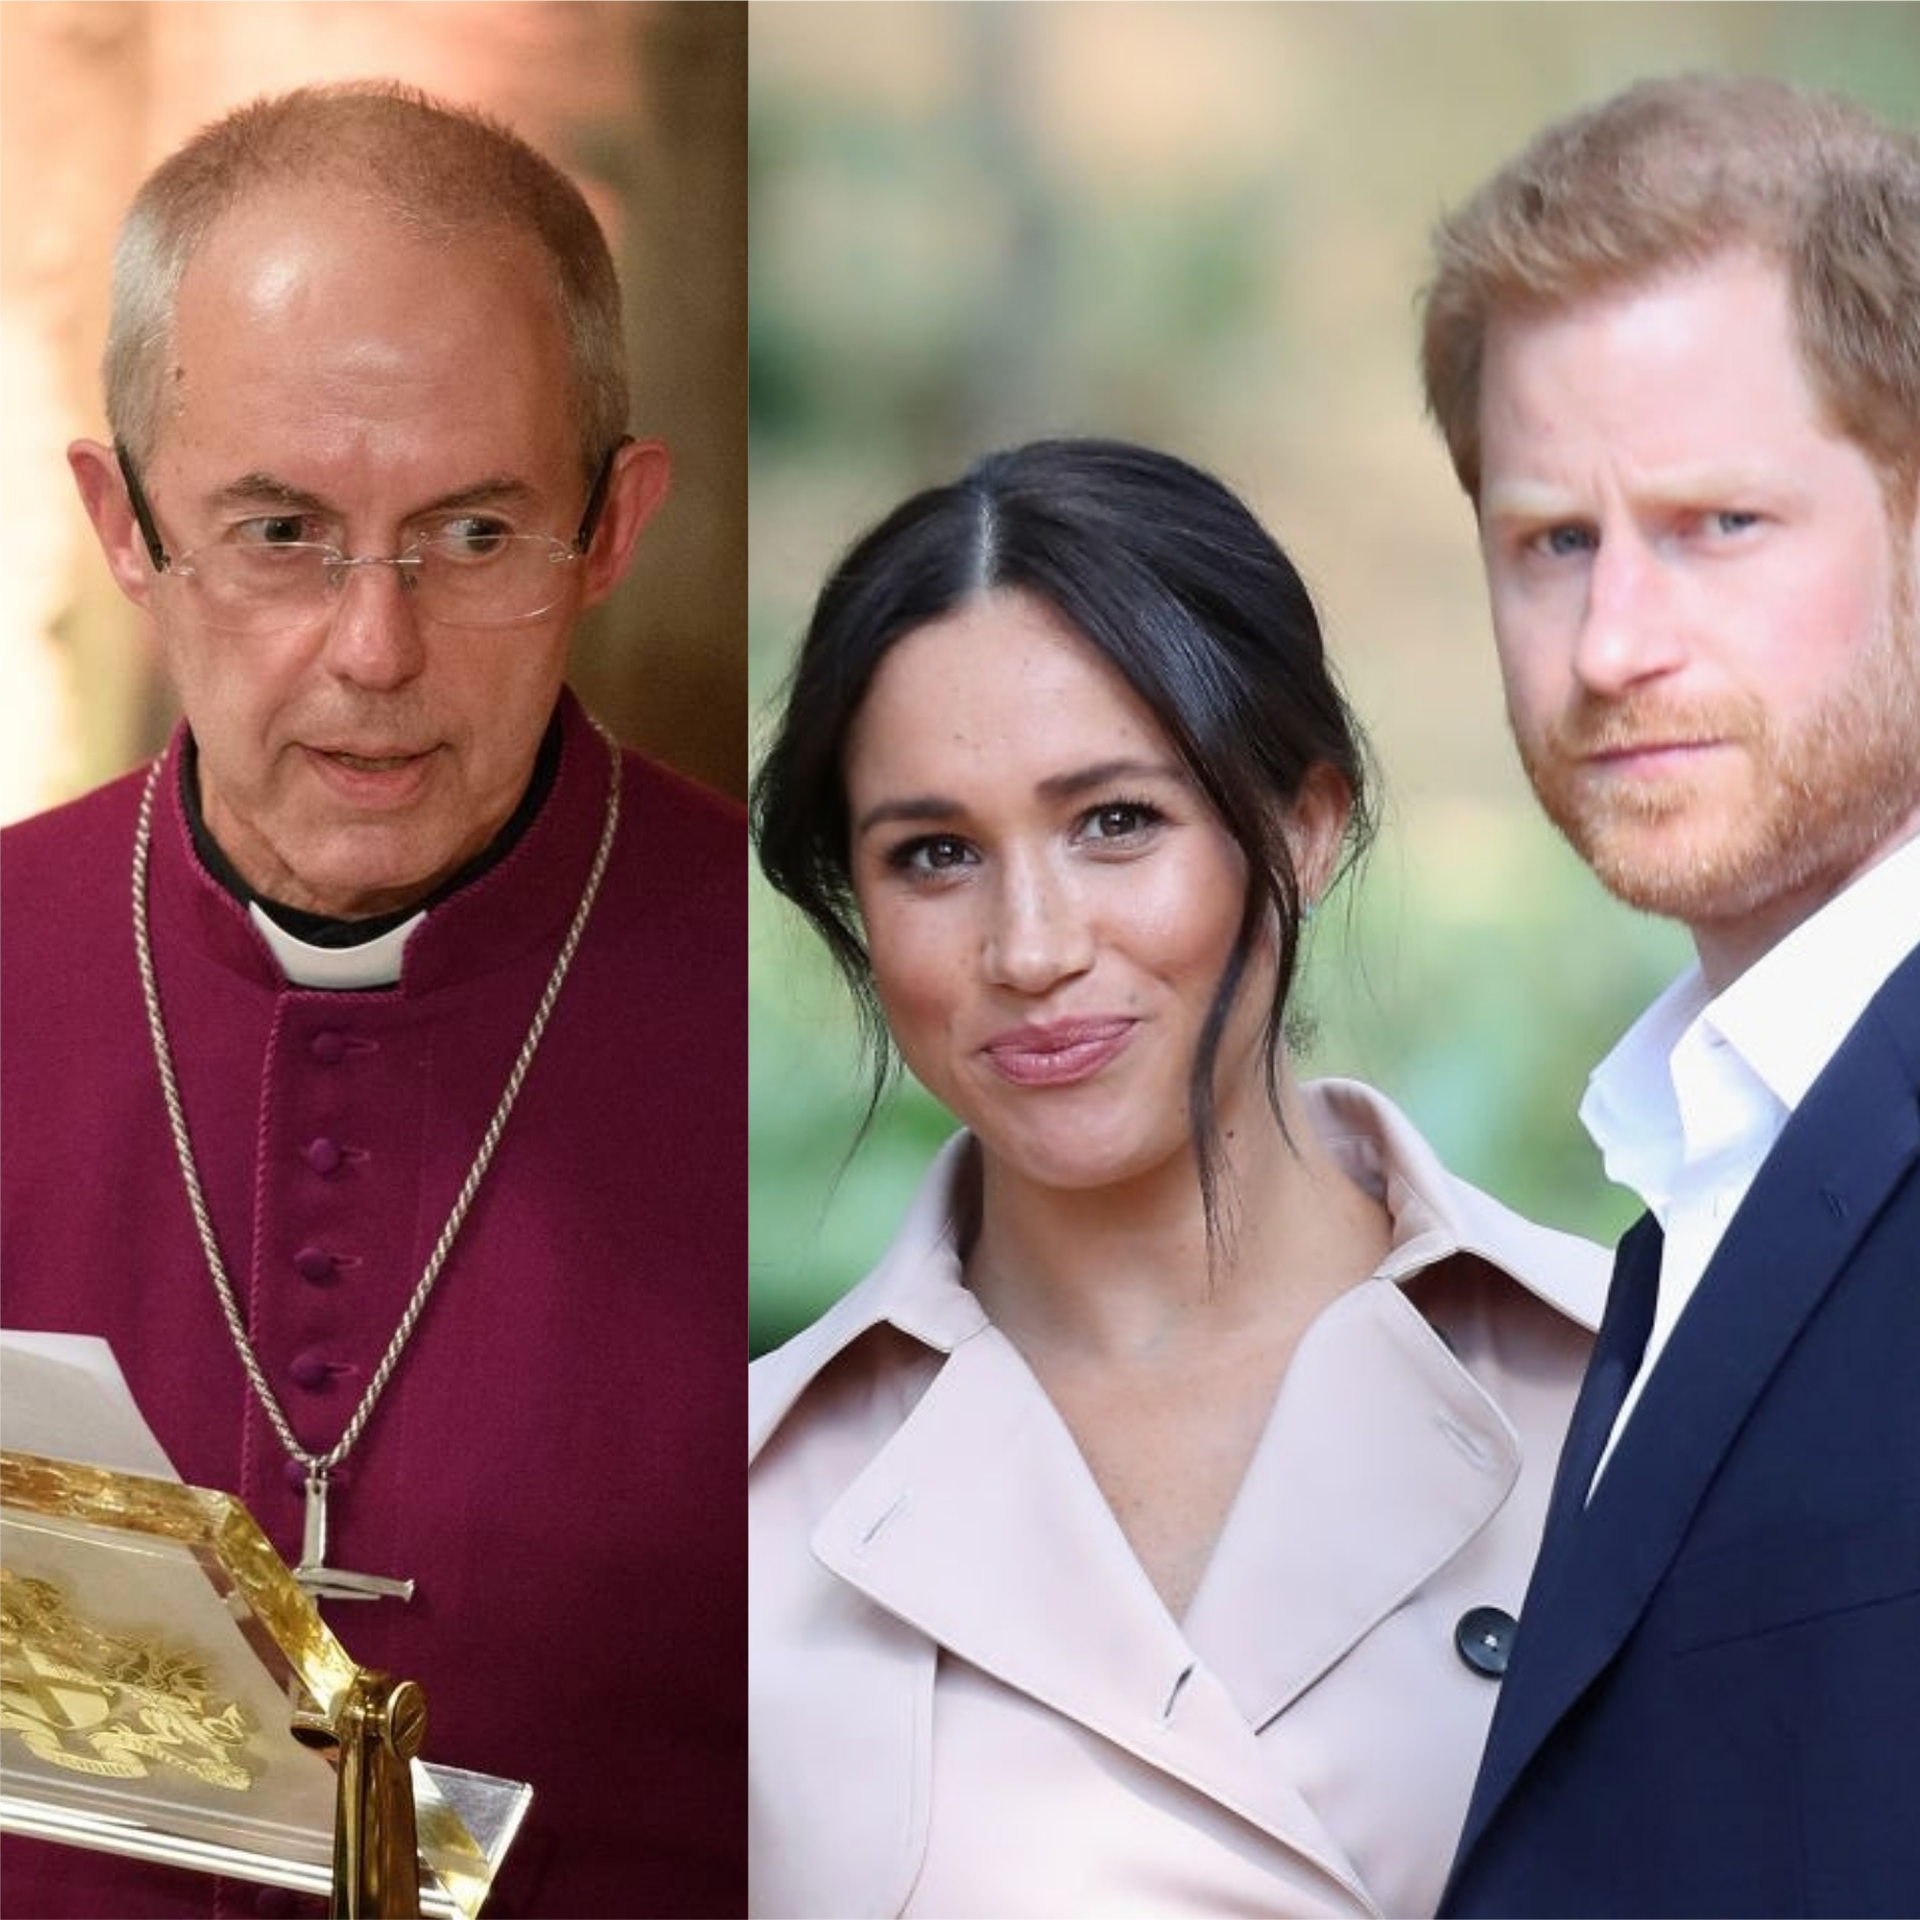 Harry and Meghan have a 'life sentence' says Archbishop of Canterbury